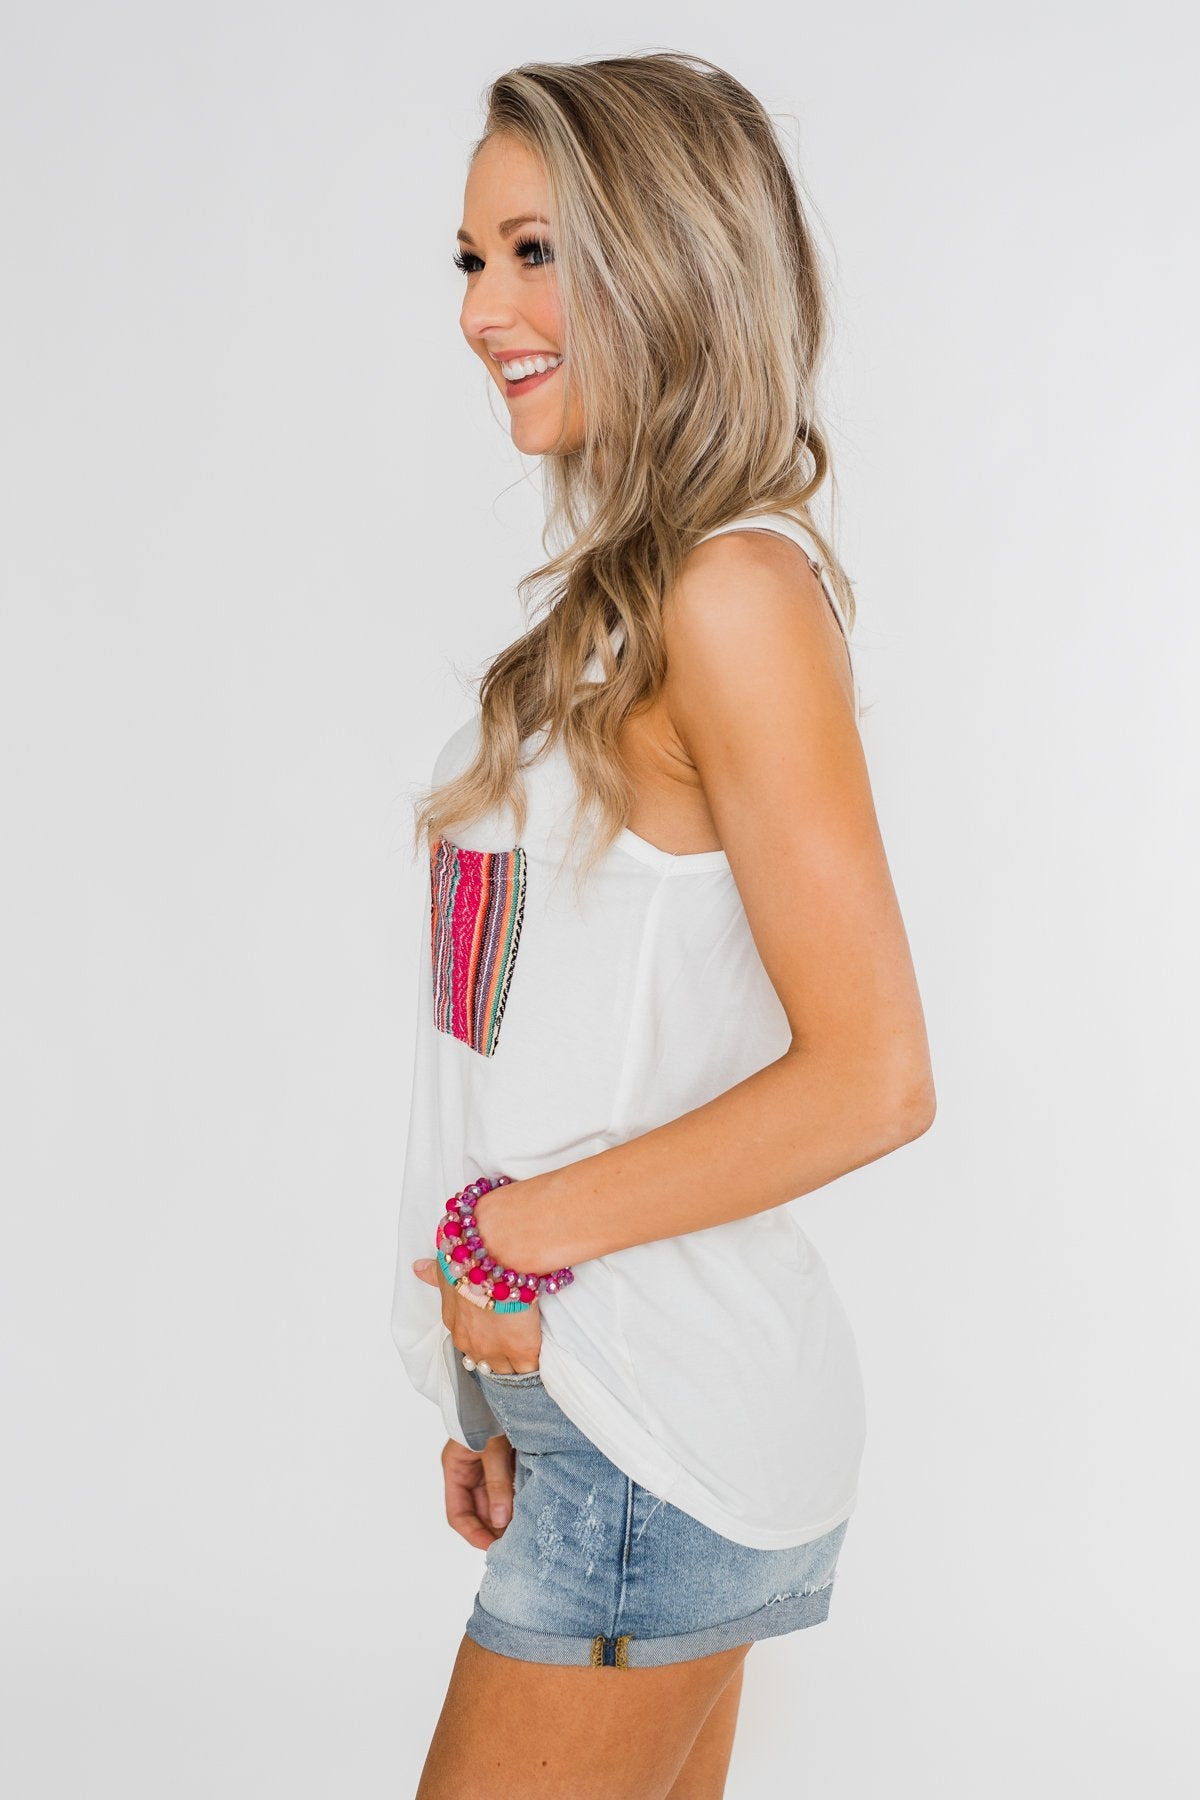 Pocketful of Color Tank Top- Ivory